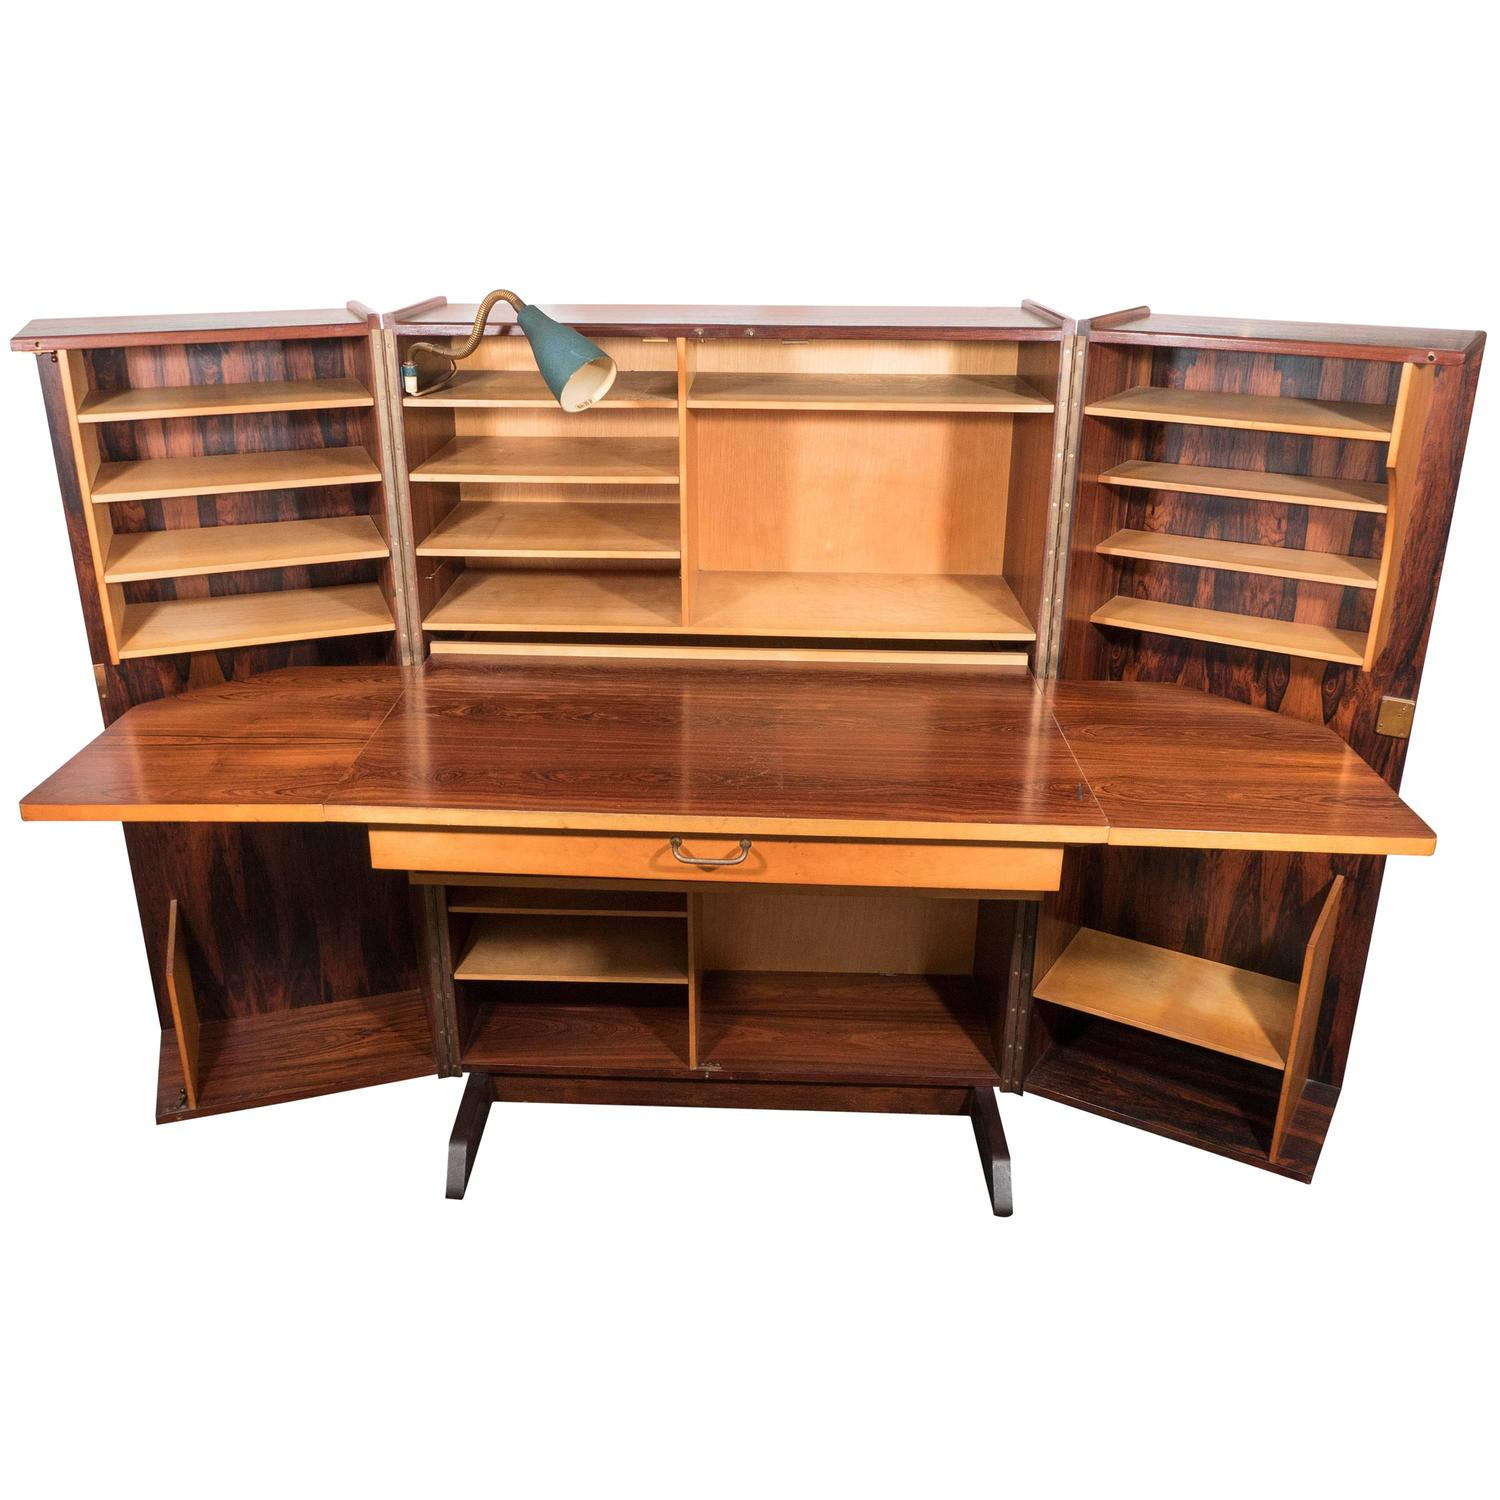 Midcentury Norwegian Hideaway Desk in Rosewood with